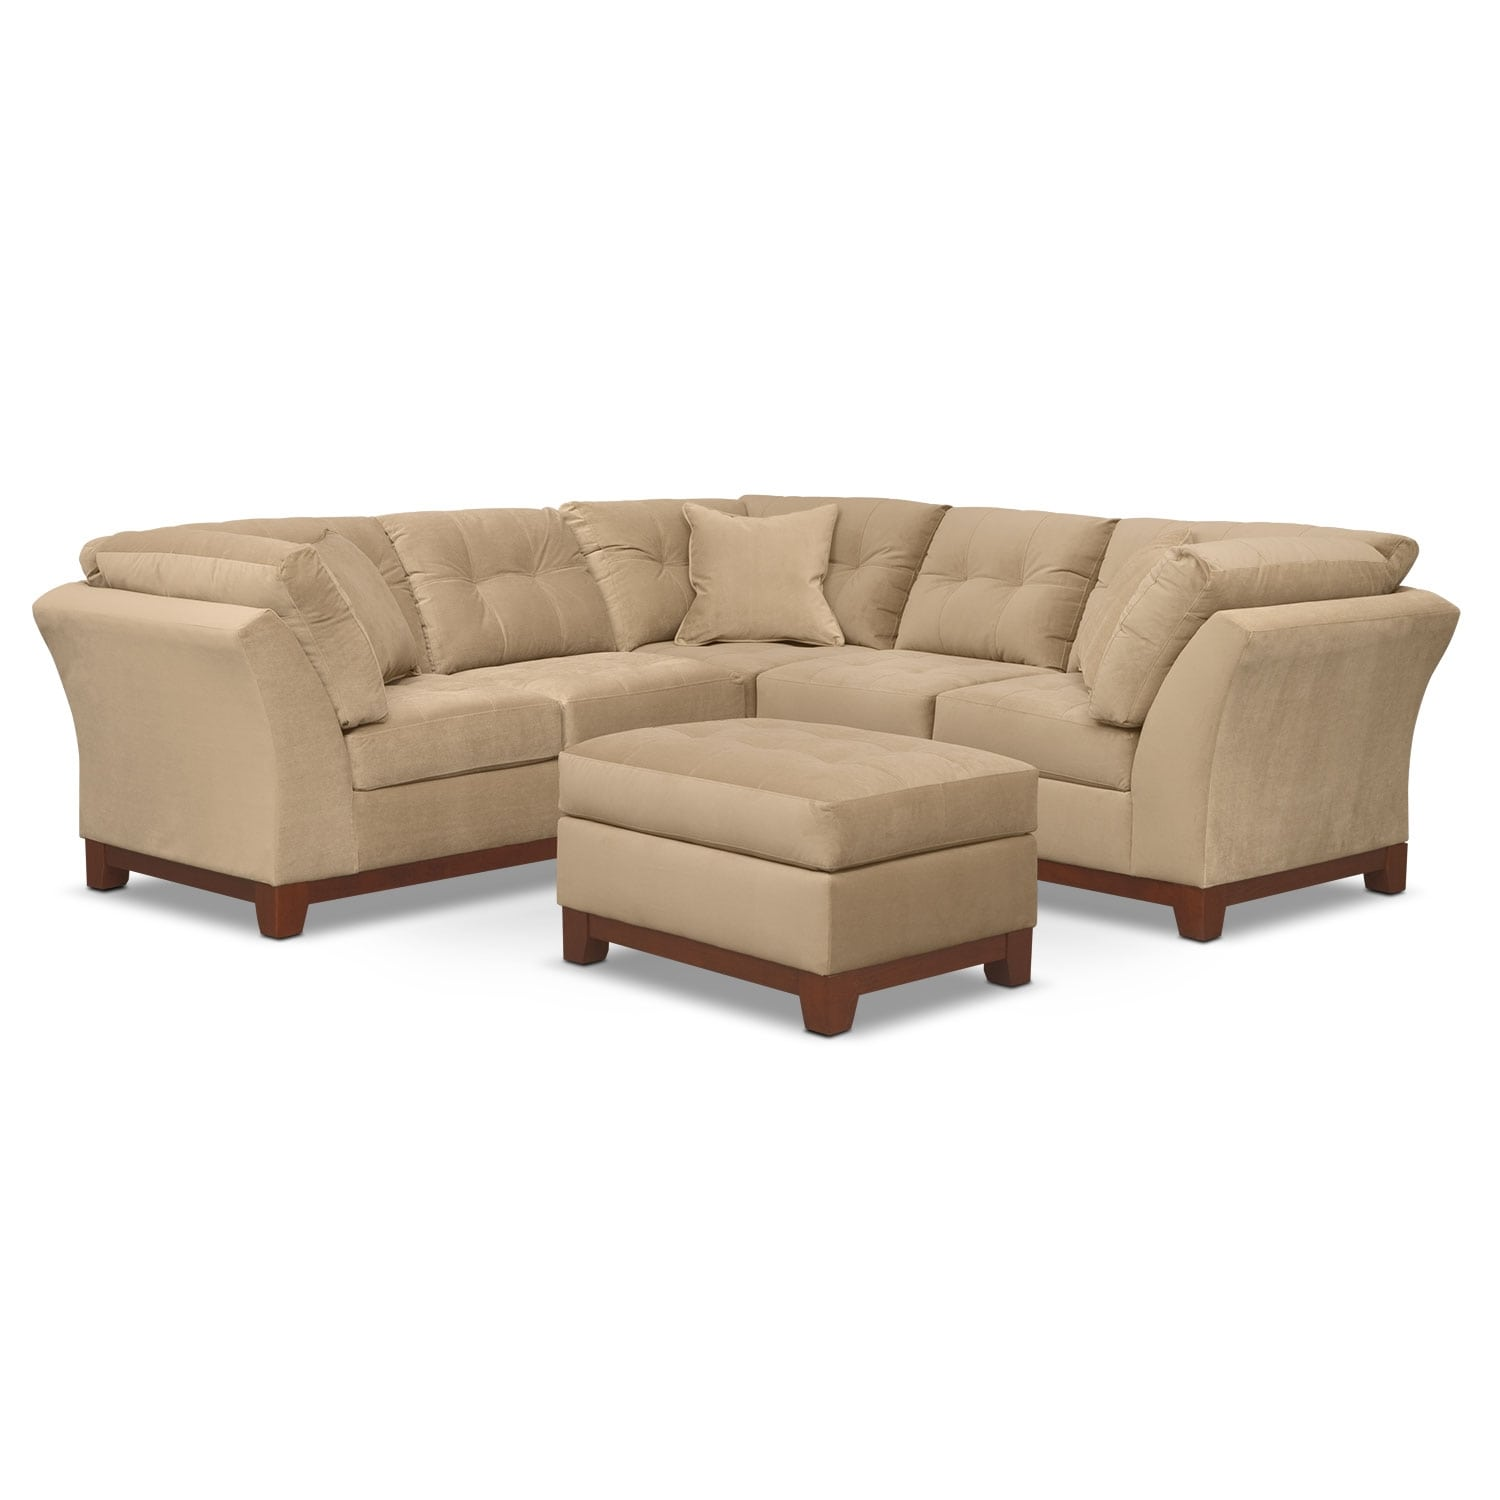 Living Room Furniture - Solace Cocoa II 2 Pc. Sectional (Alternate II) and Ottoman